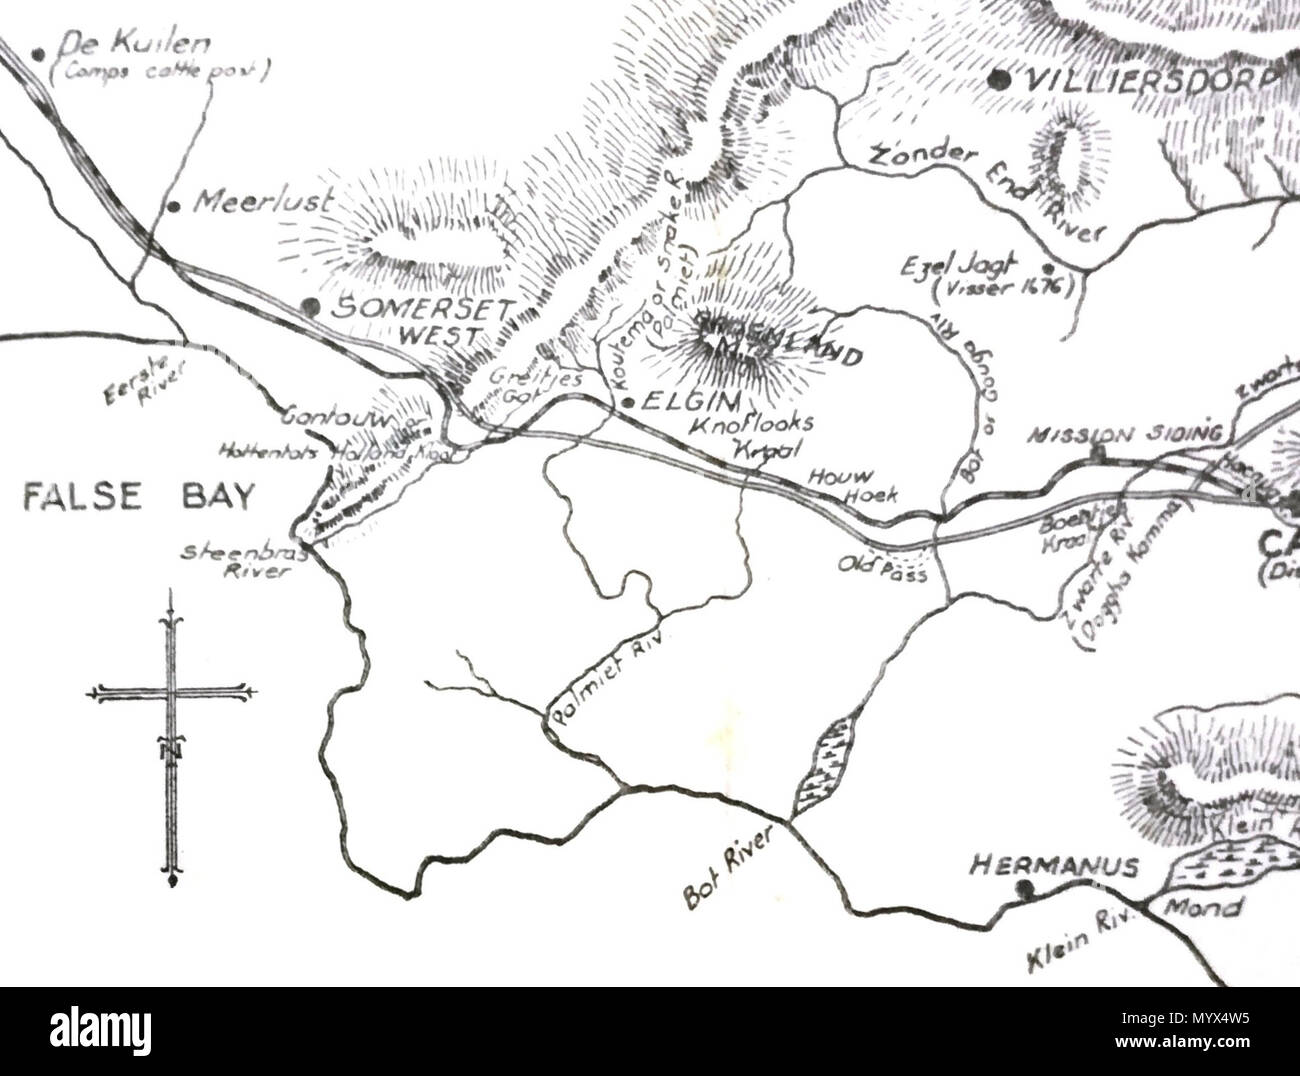 English Early Map Of Somerset West Palmiet River